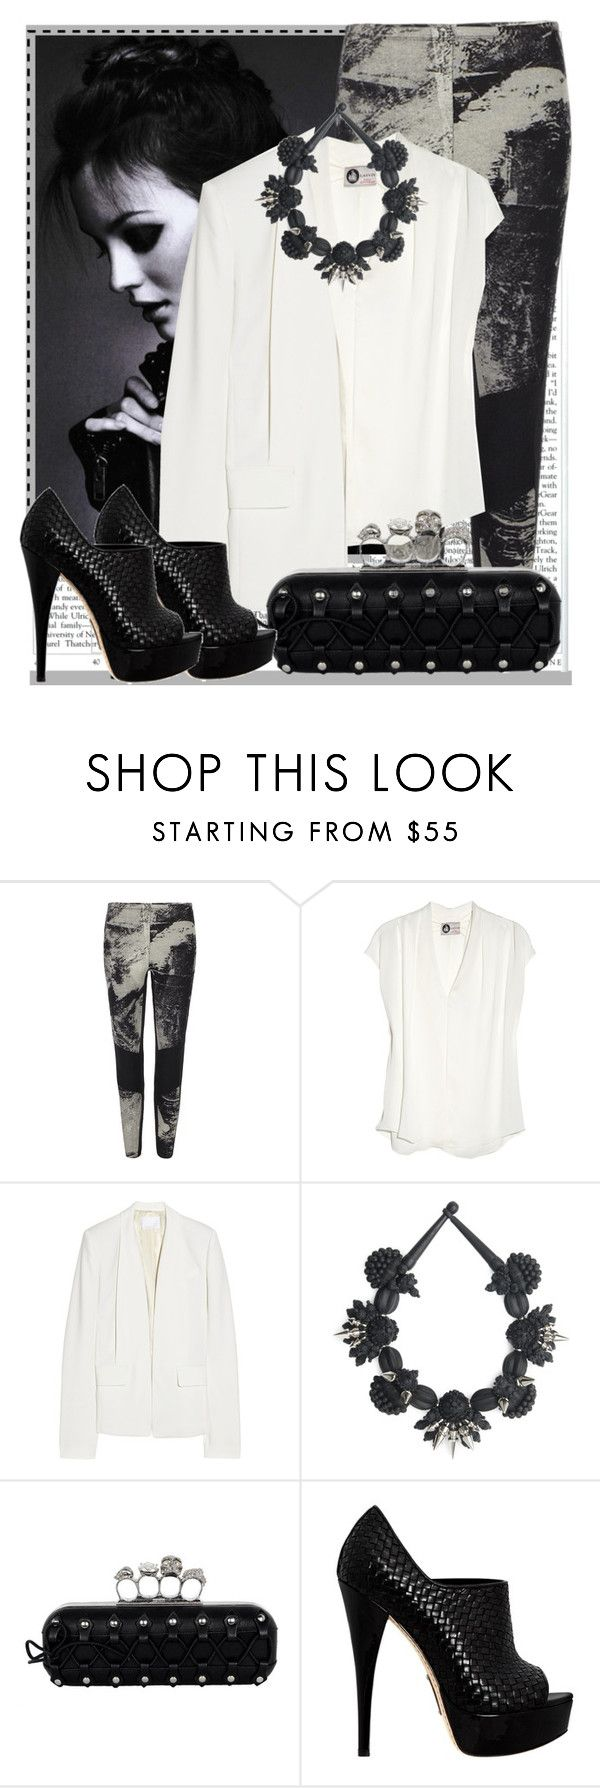 """""""Trend Alert : Black & White"""" by princesskary ❤ liked on Polyvore featuring AllSaints, Lanvin, Alexander Wang, Alexander McQueen and Alejandro Ingelmo"""